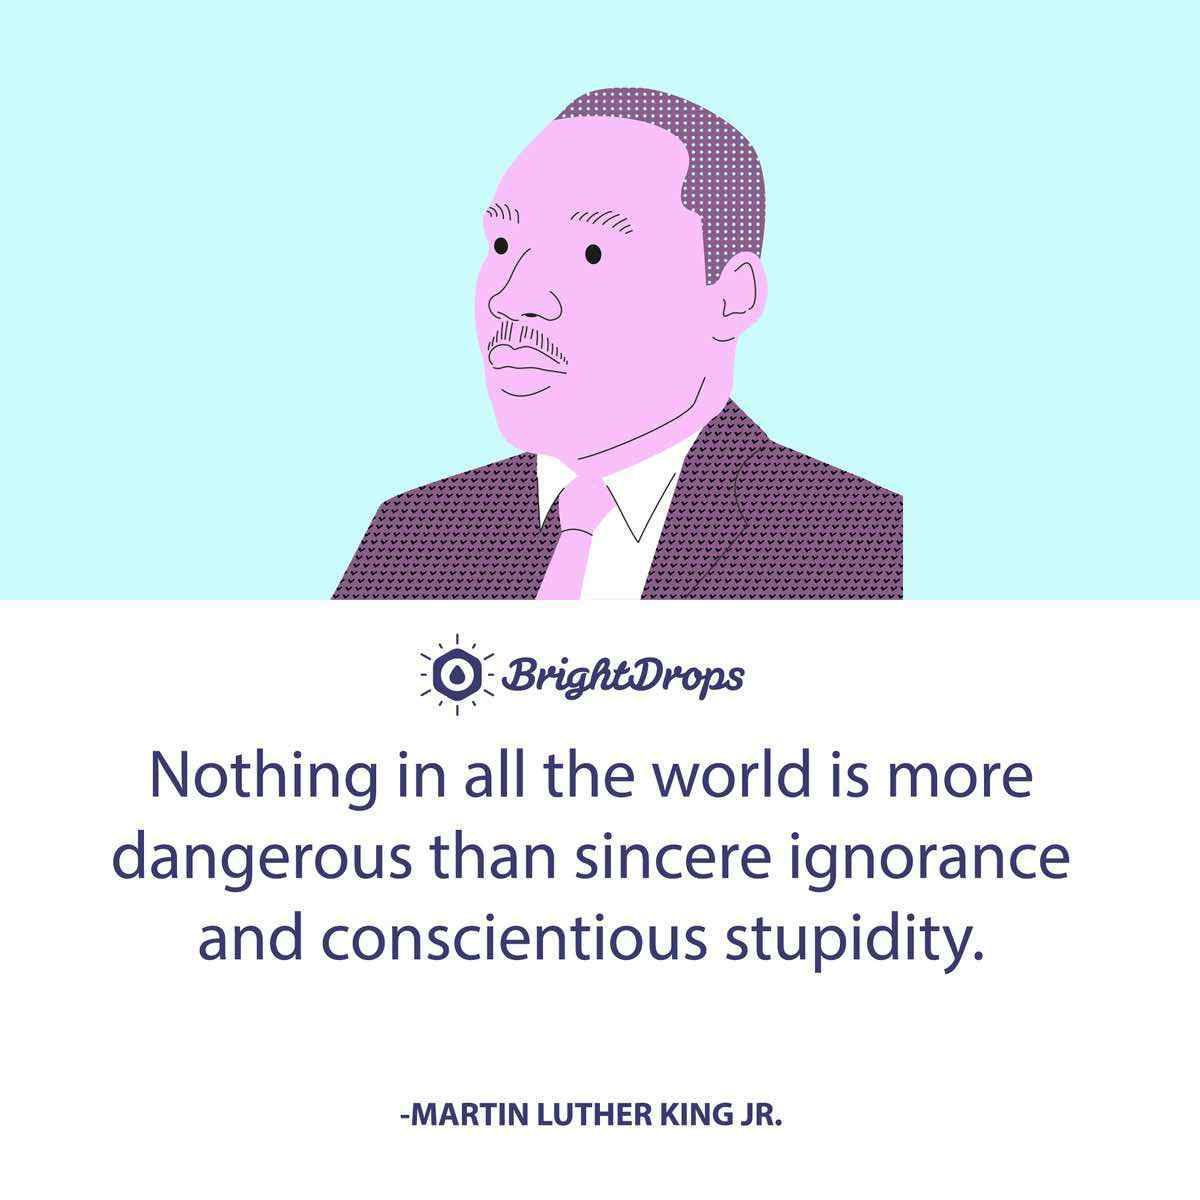 Nothing in all the world is more dangerous than sincere ignorance and conscientious stupidity. -Martin Luther King Jr.